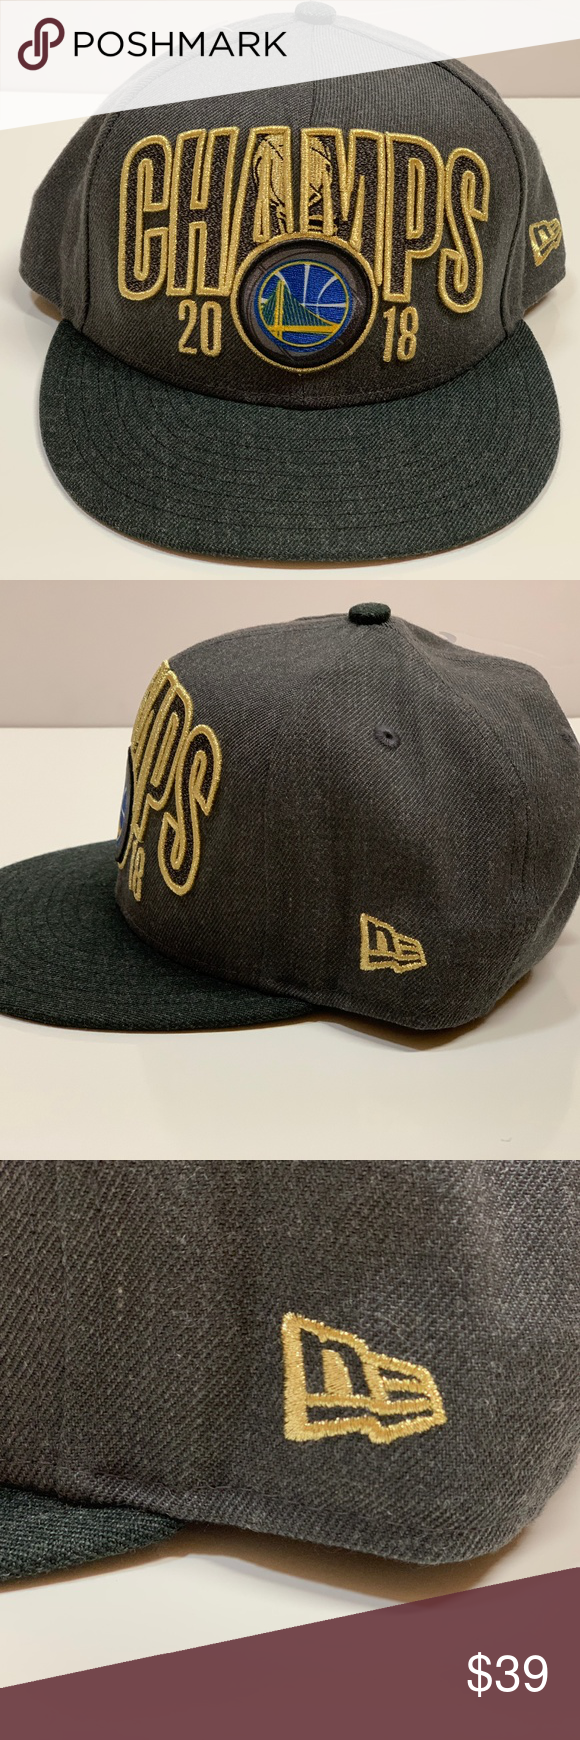 8803a7e9ce6a2e New Era Golden State Warriors Champs 2018 Snapback Brand New with Tags!!!  New